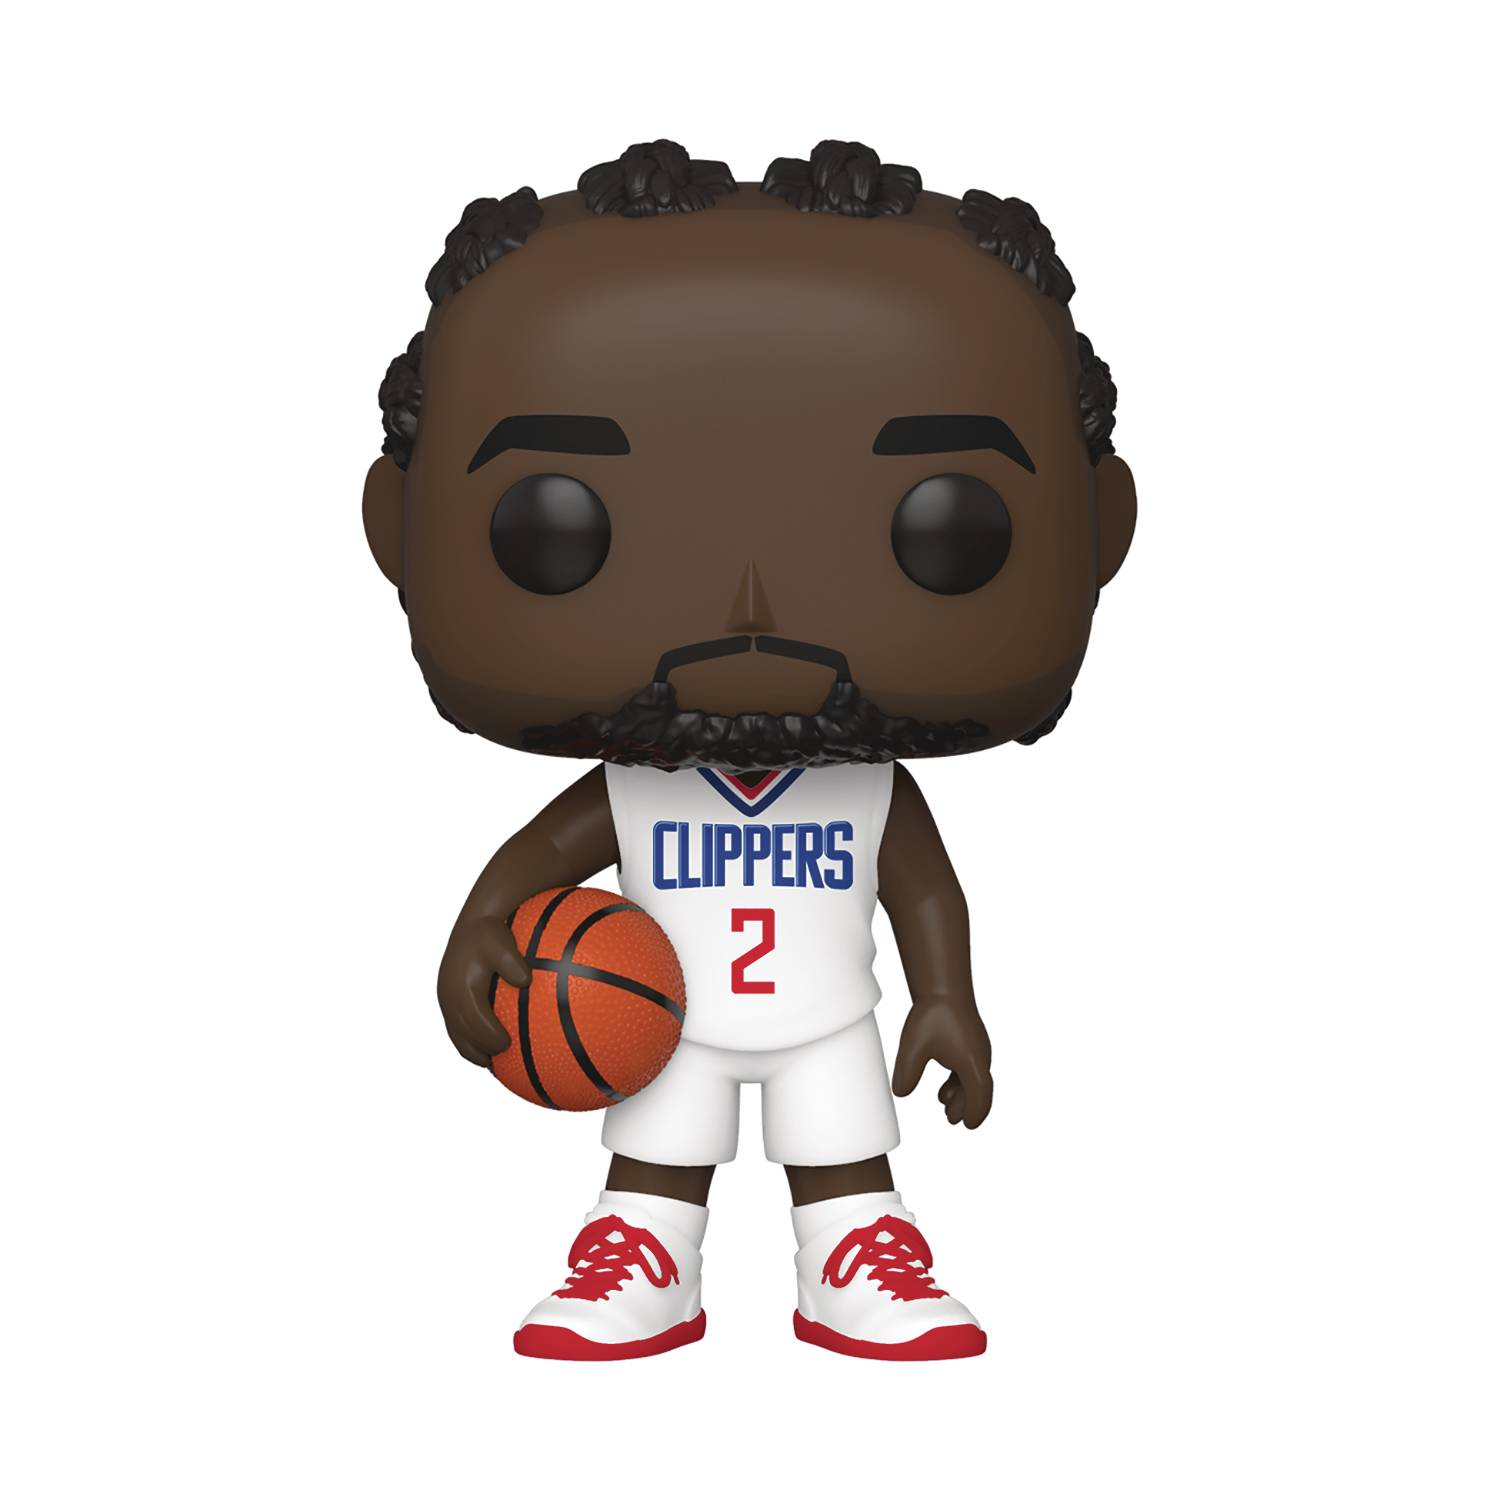 POP NBA CLIPPERS KAWHI LEONARD VIN FIG